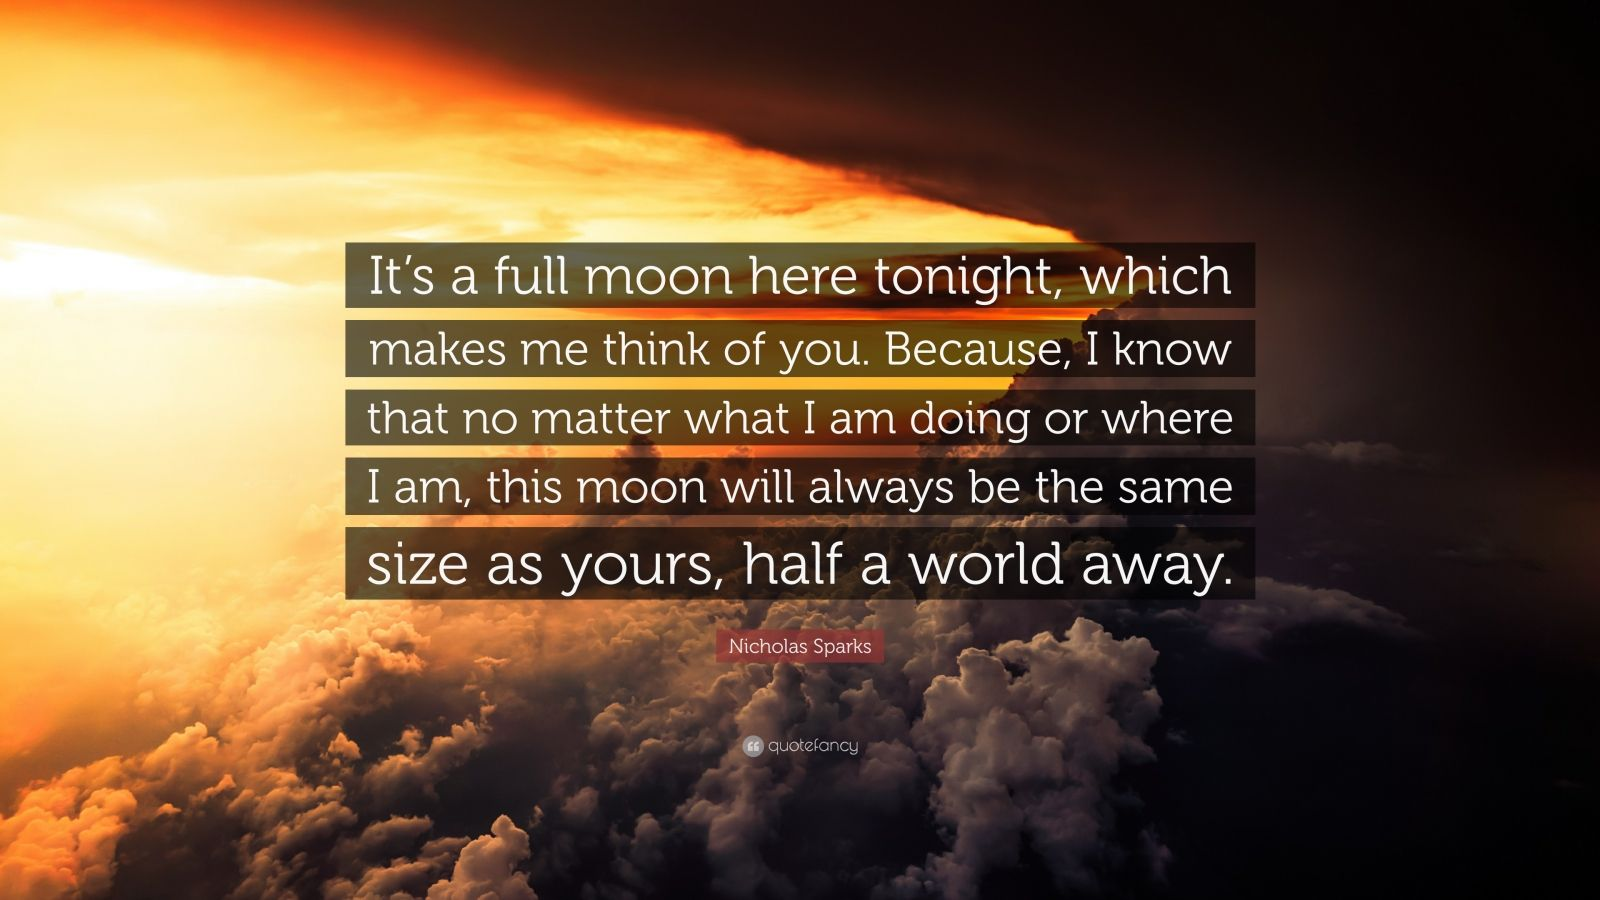 """Nicholas Sparks Quote: """"It's a full moon here tonight, which makes me think of you. Because, I know that no matter what I am doing or where I am, this moon will always be the same size as yours, half a world away."""""""